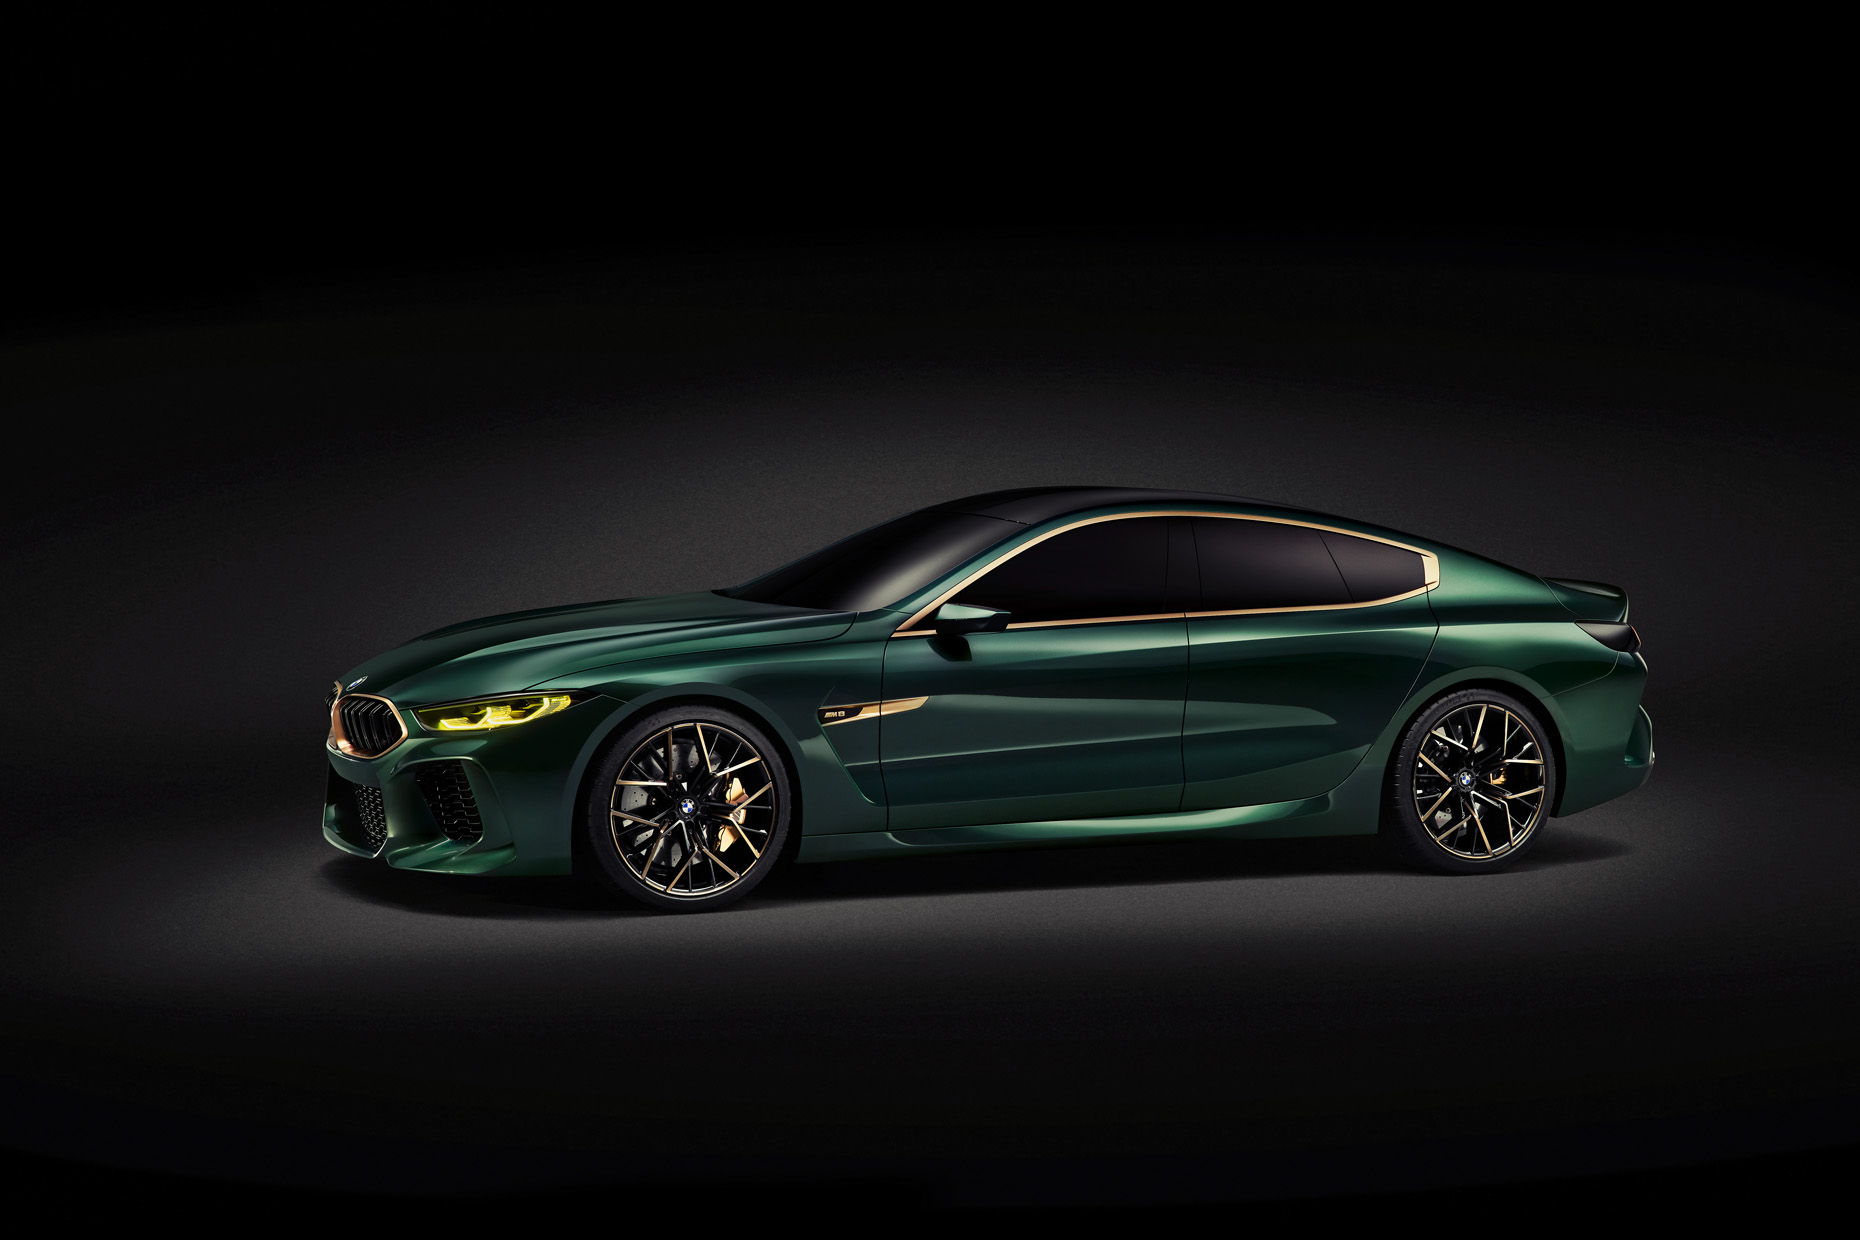 05_02_01_BMW_Concept_M8_Gran_Coupe_34Front_03_V1